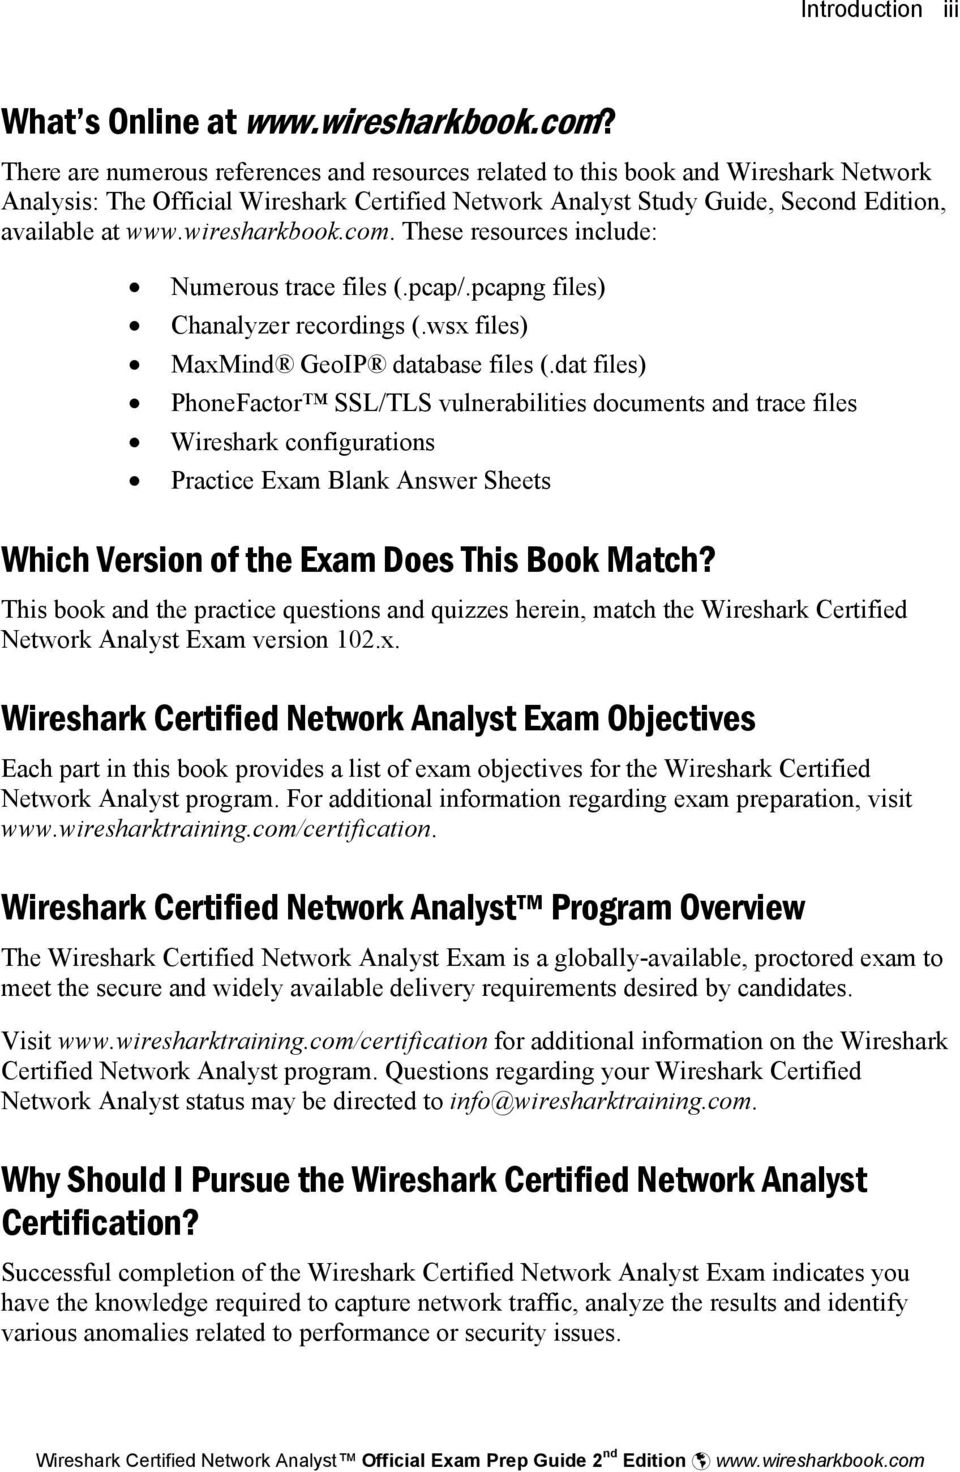 Wireshark Certified Network Analyst Official Exam Prep Guide Second